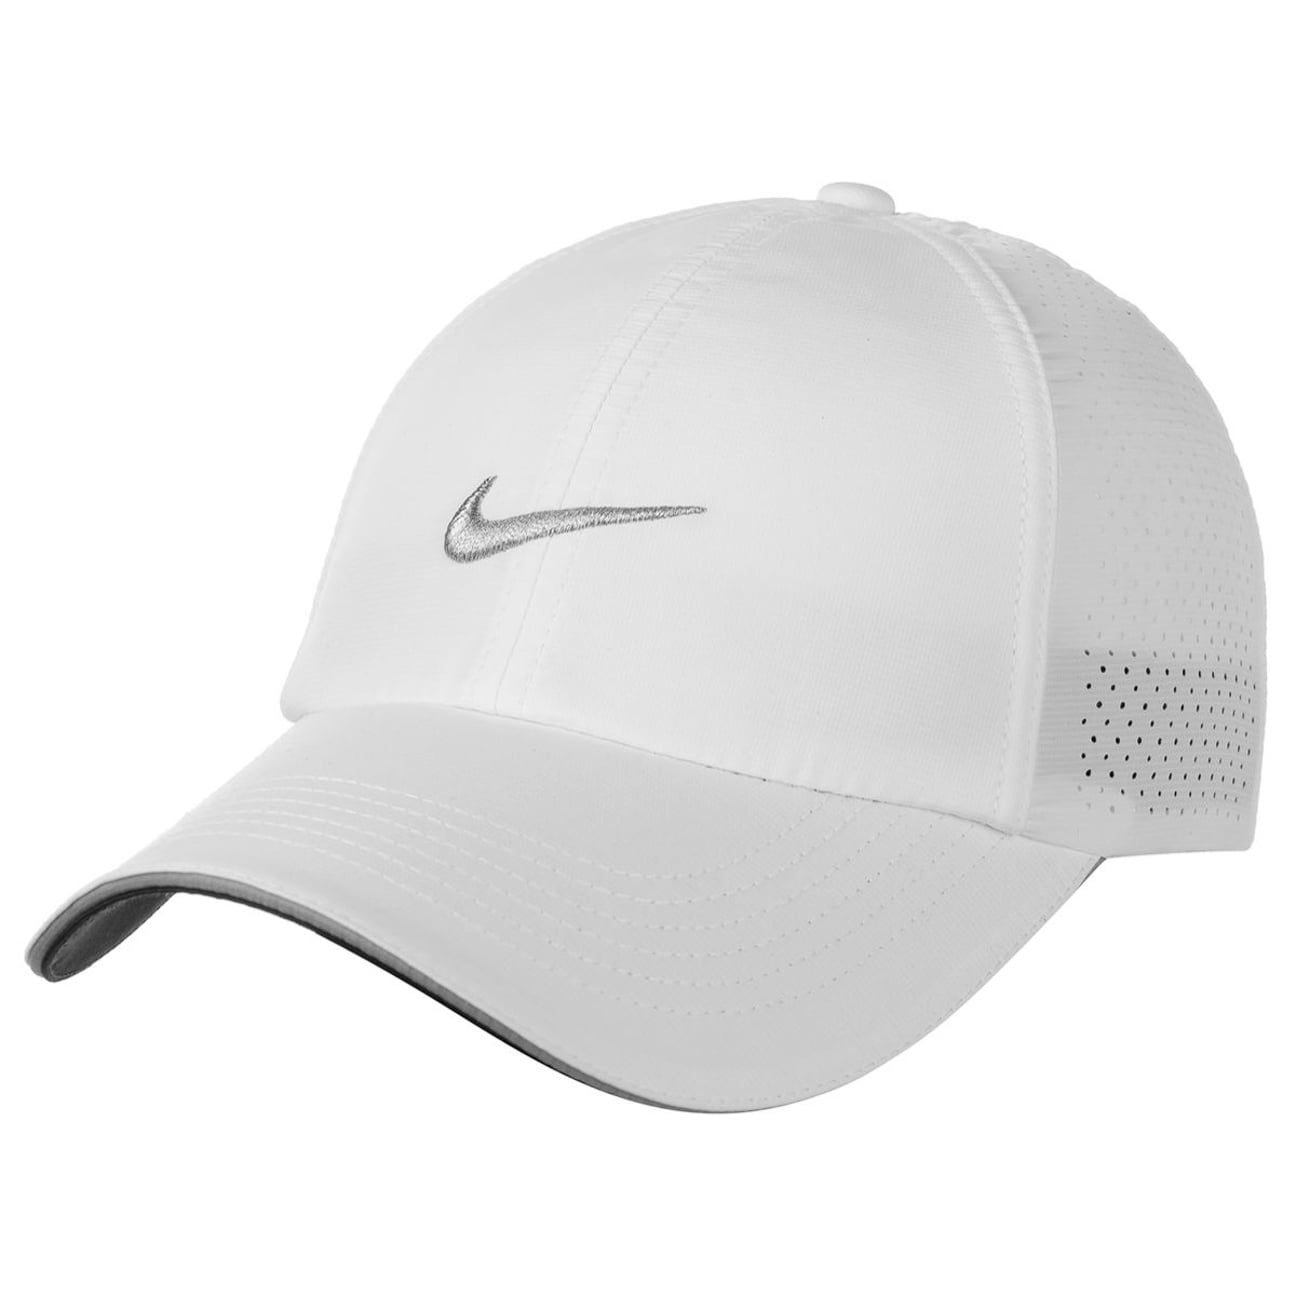 casquette nike pour femme casquette nike free homme noire casquette nike free homme noire. Black Bedroom Furniture Sets. Home Design Ideas